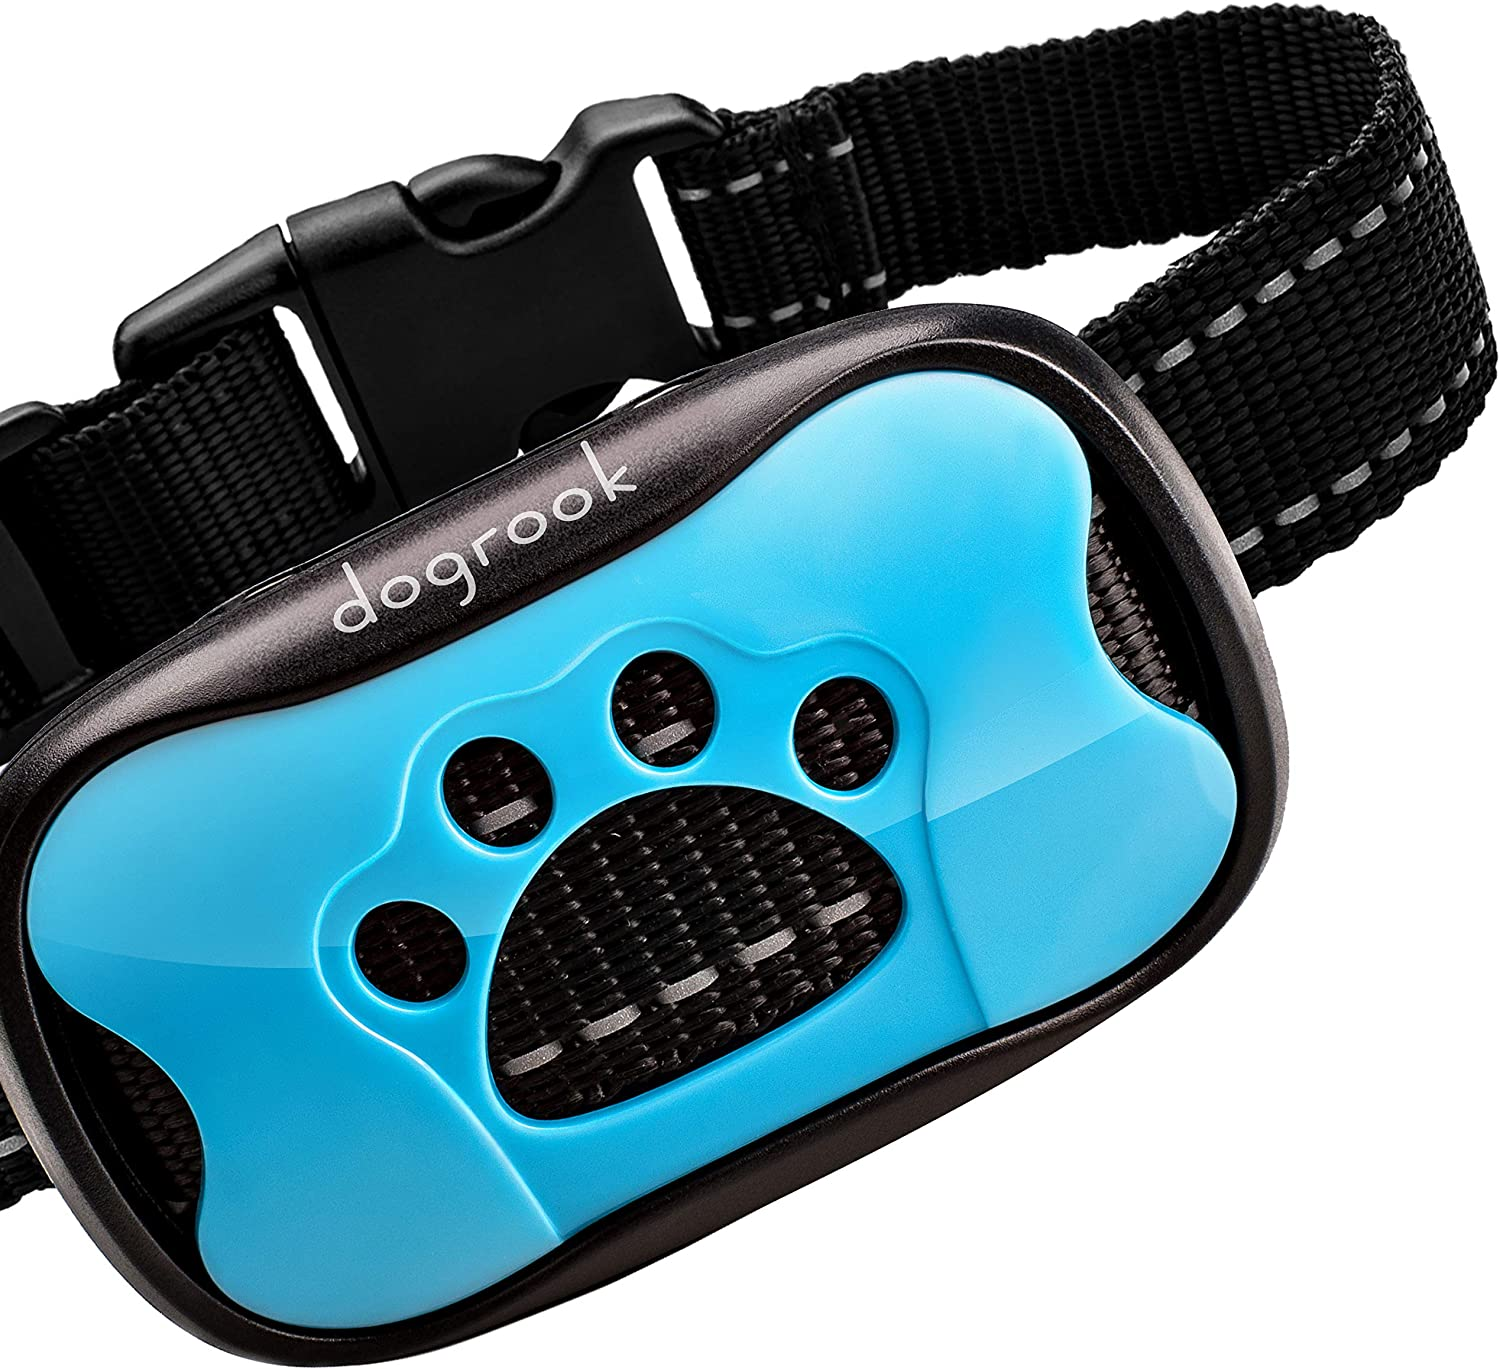 DogRook Rechargeable Dog Bark Collar - Humane, No Shock Barking Collar - w/2 Vibration & Beep Modes - Small, Medium, Large Dogs Breeds - No Harm Training - Automatic Action Without Remote - Adjustable : Pet Supplies